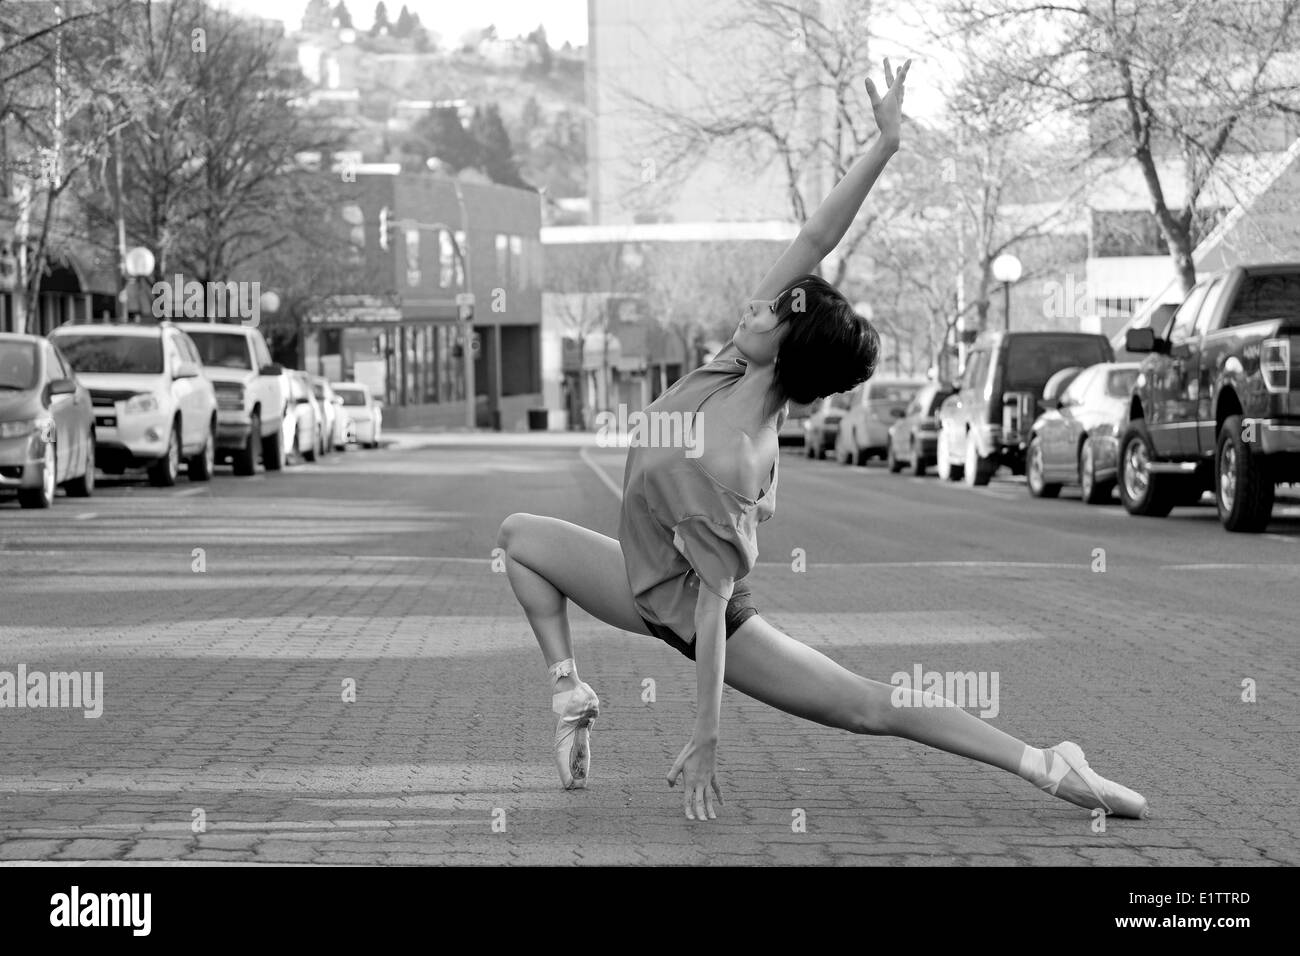 A female ballet dancer in a strength pose in the city of Kamloops, Thompson Okanagan region, British Columbia Canada - Stock Image